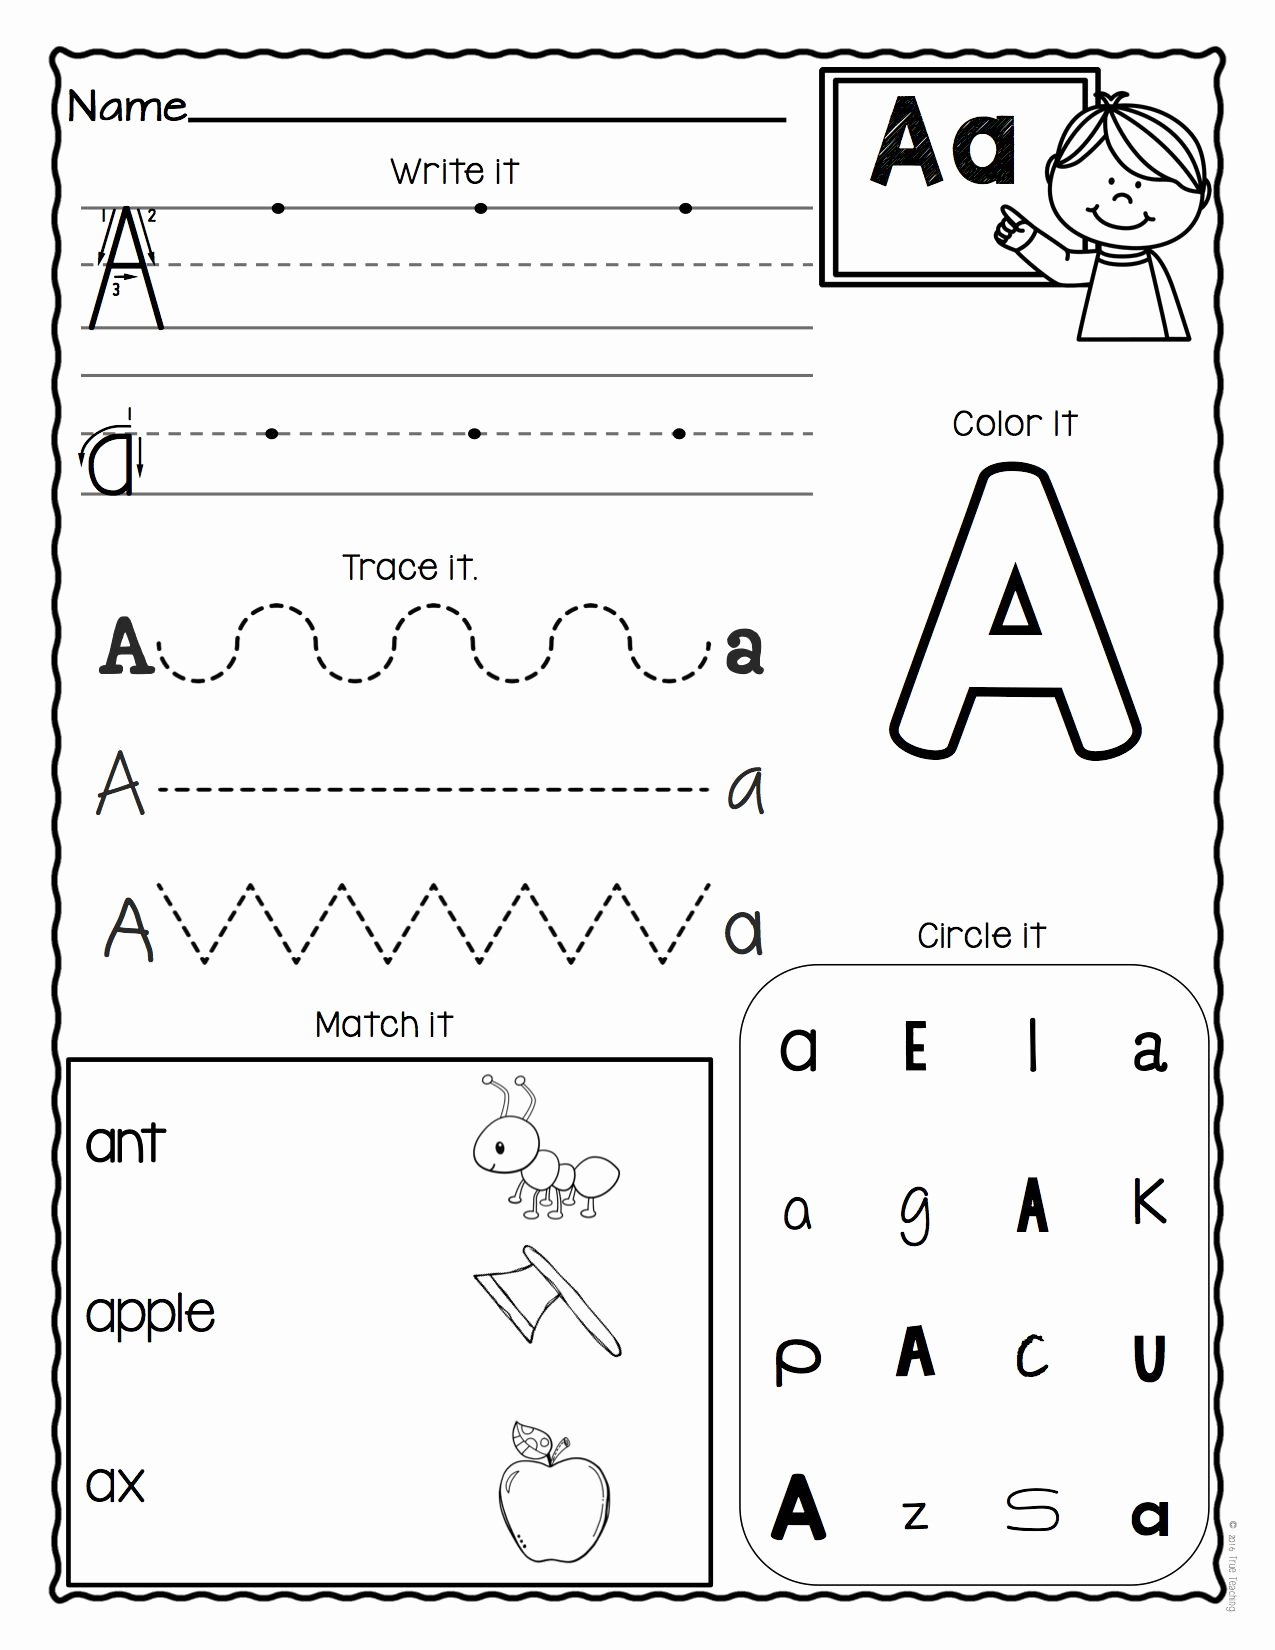 Worksheets for Preschoolers Letter A Kids A Z Letter Worksheets Set 3